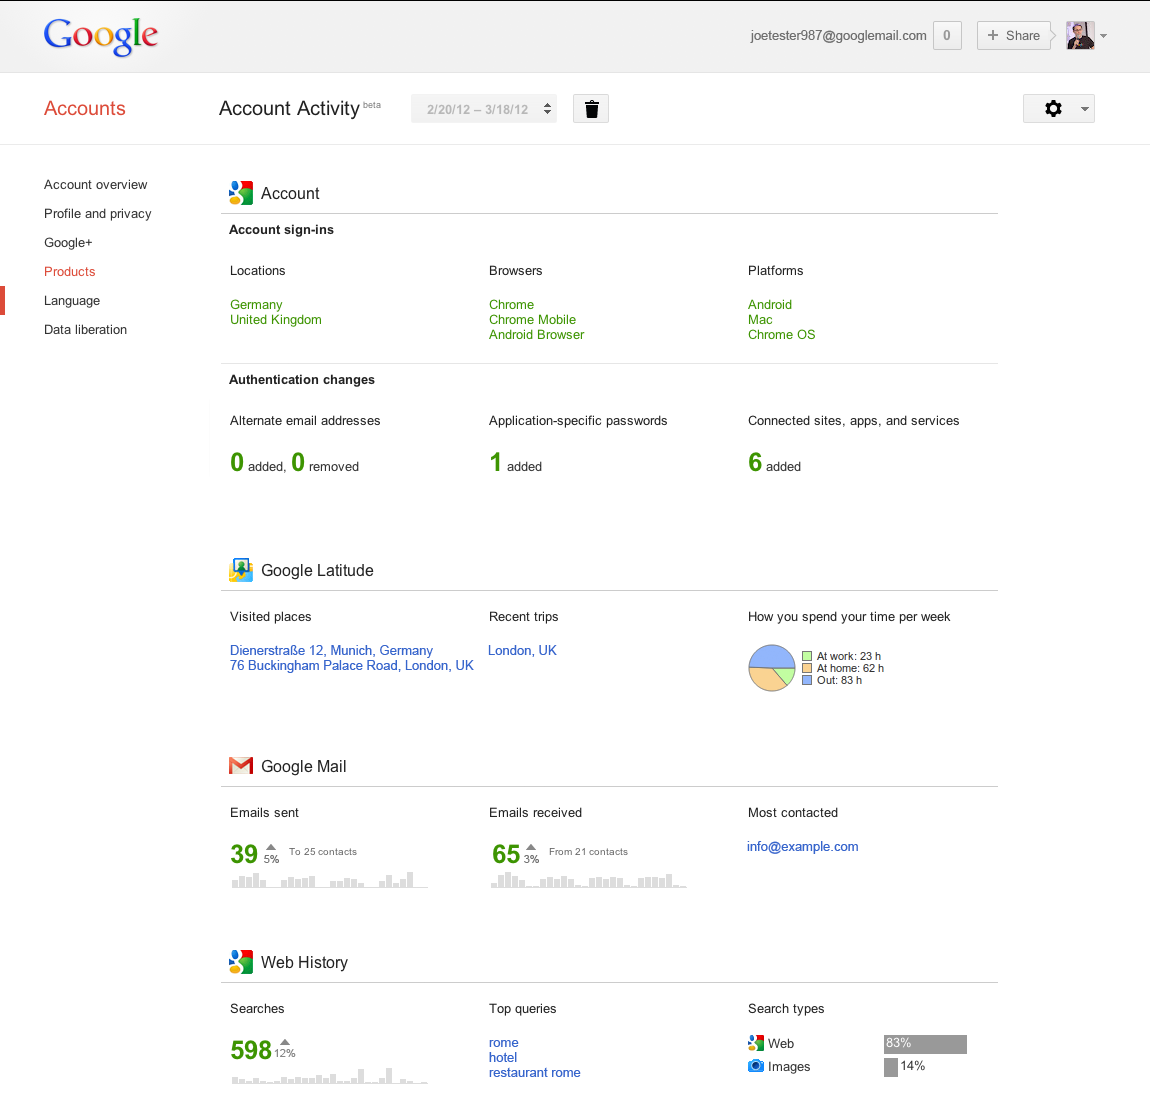 Digital Marketing News – Google Moves Towards Personal Analytics Service